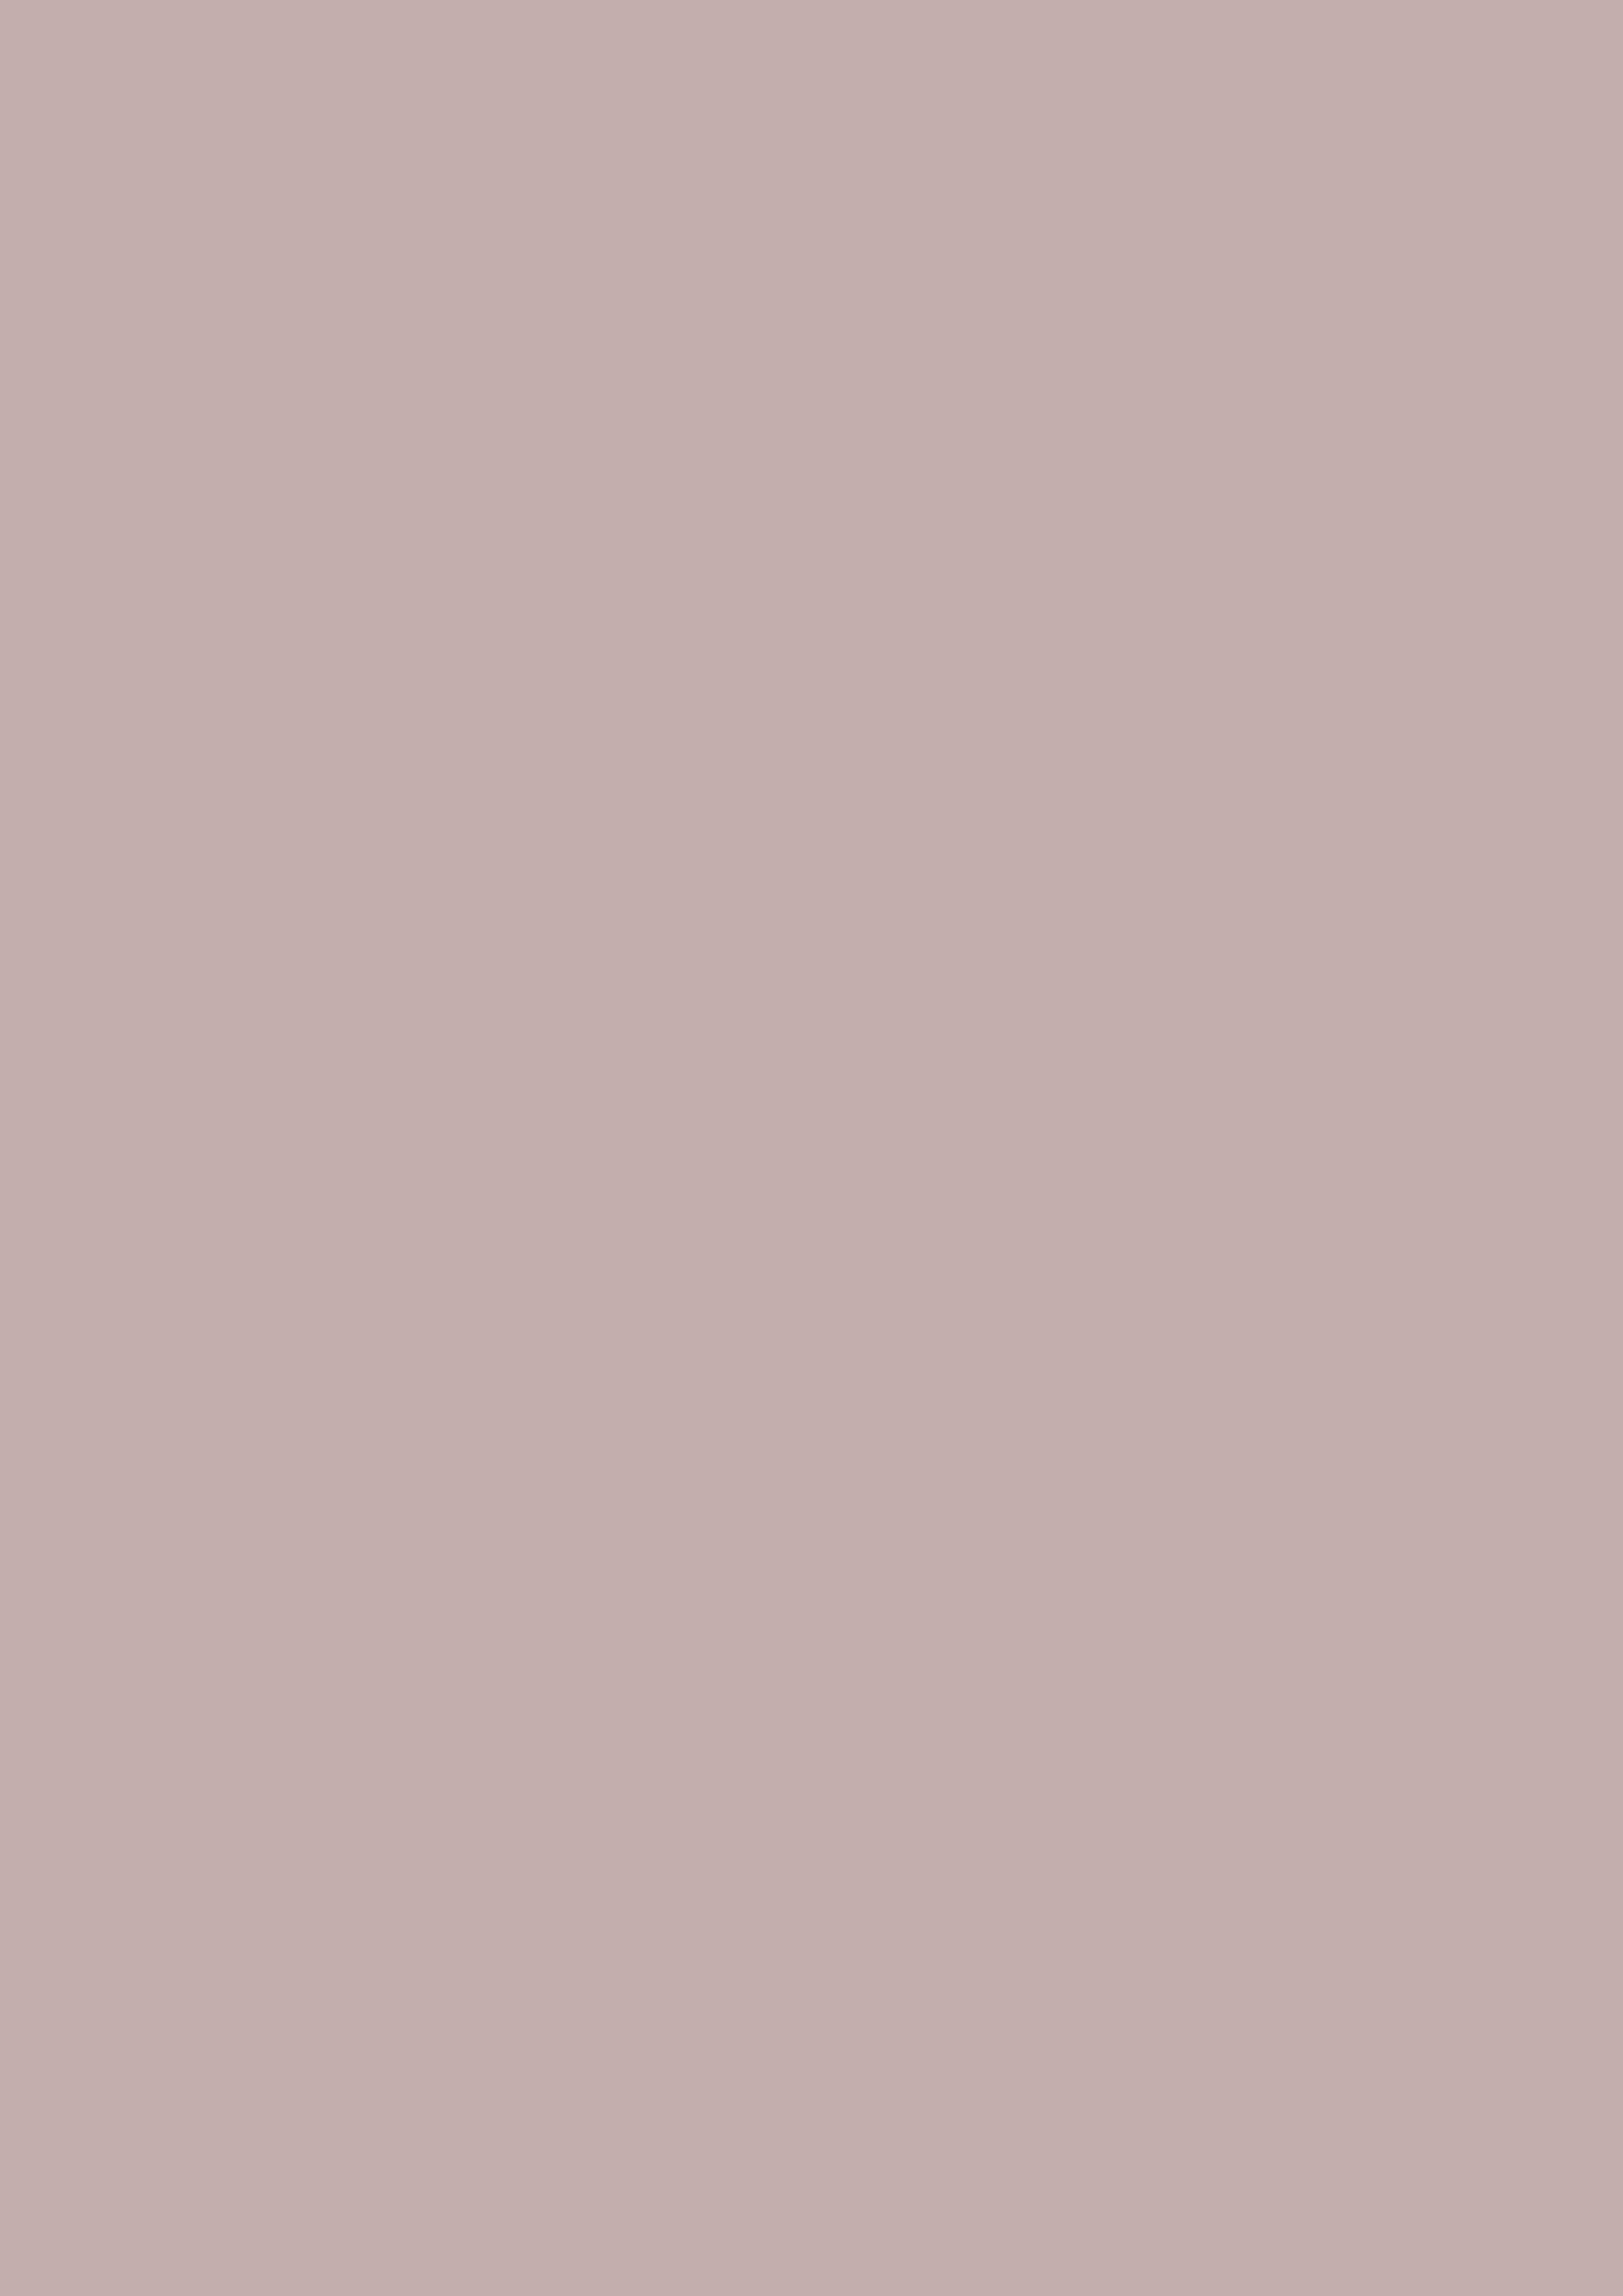 2480x3508 Silver Pink Solid Color Background